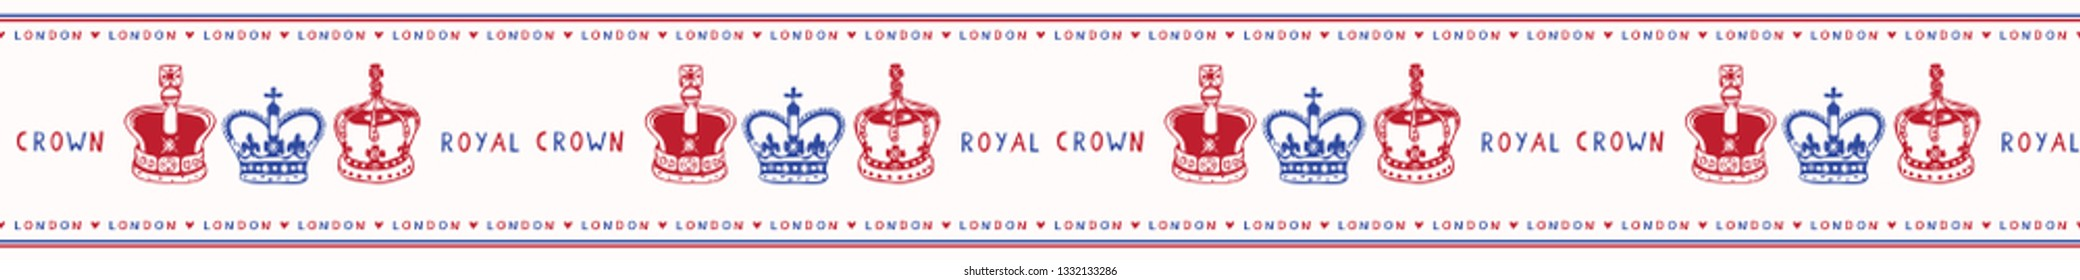 Sketchy London Royal Crown seamless vector border pattern. Famous historical british symbol. Ttravel vacation. Iconic British uk sightseeing ribbon trim. Hand drawn queen coronation coronet red blue.